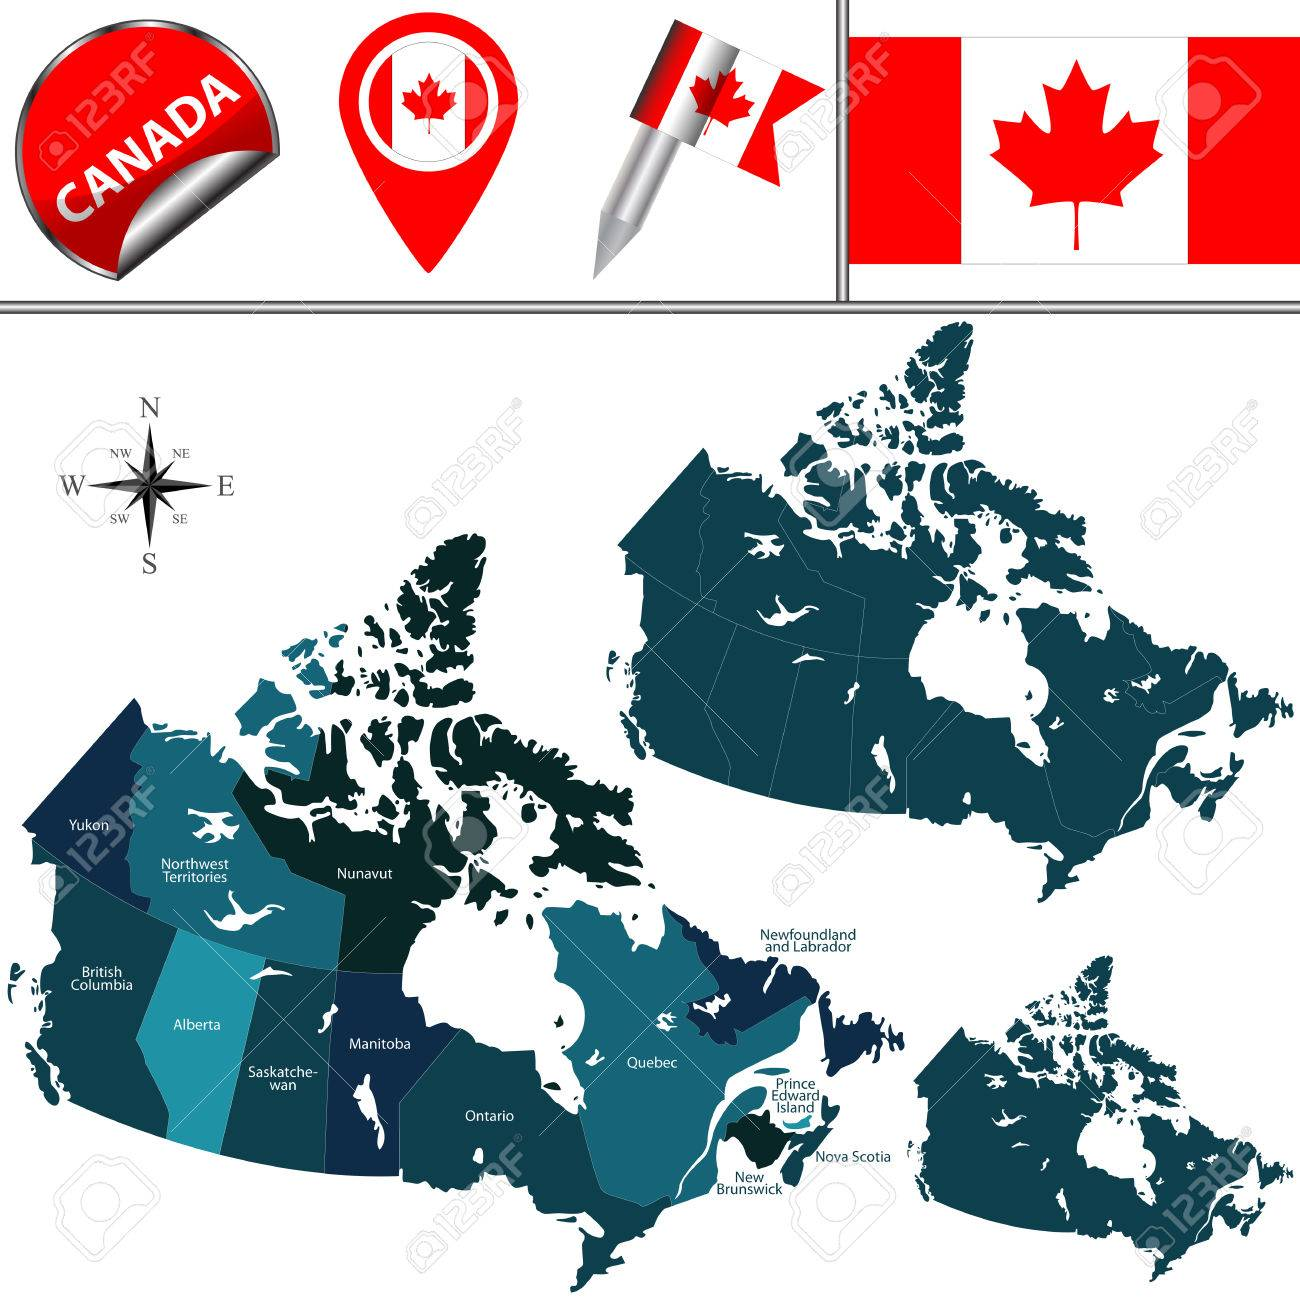 Map Of Canada And Provinces And Territories.Map Of Canada With Named Provinces Territories And Travel Icons